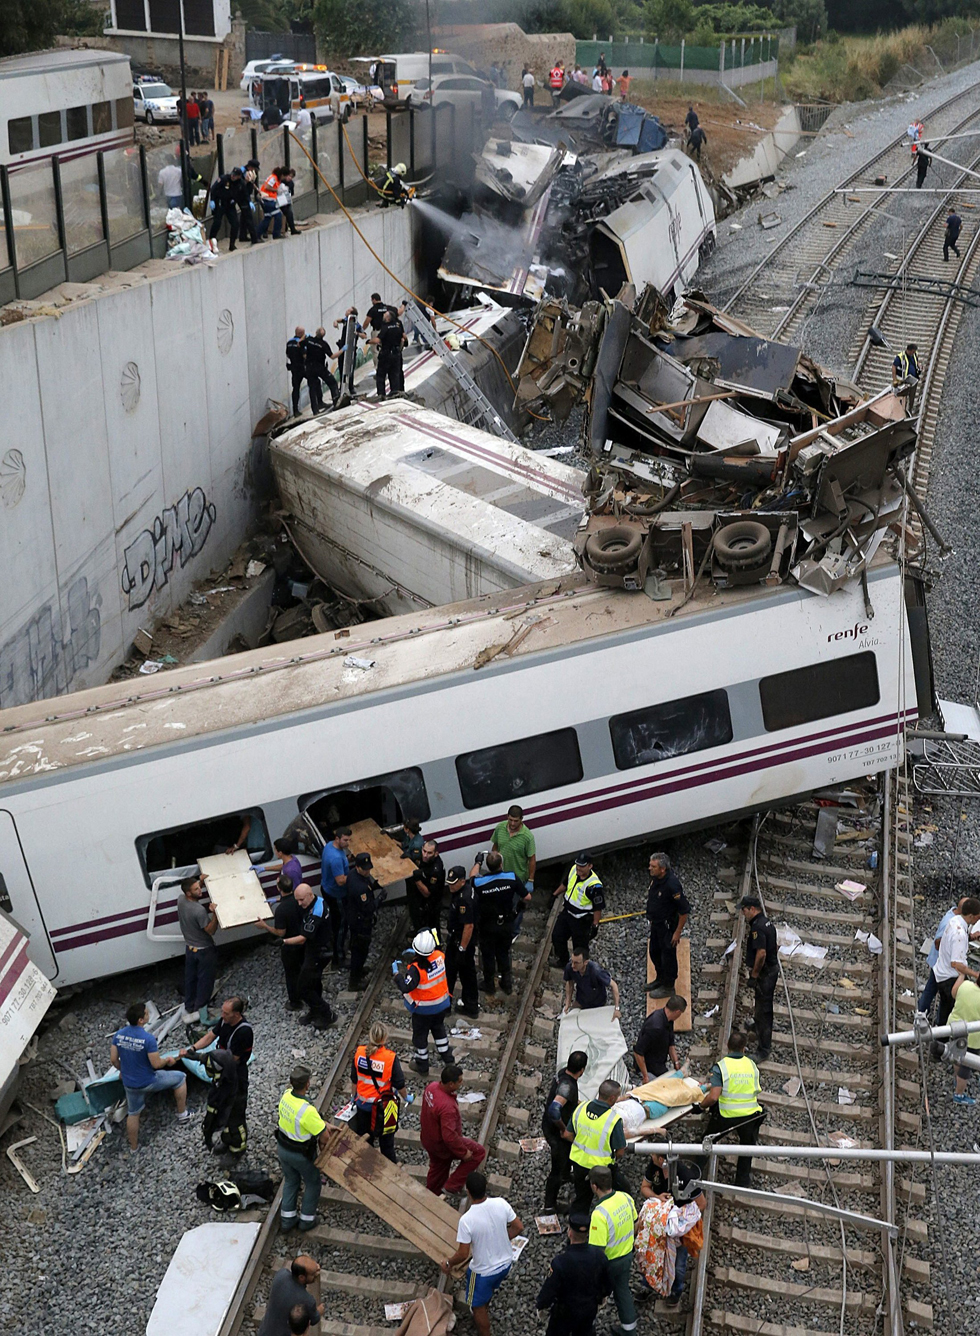 Emergency members attend to passengers injured in a train accident near Santiago de Compostela, Spain. (Lavandeira Jr./EFE via Zuma Press/MCT)